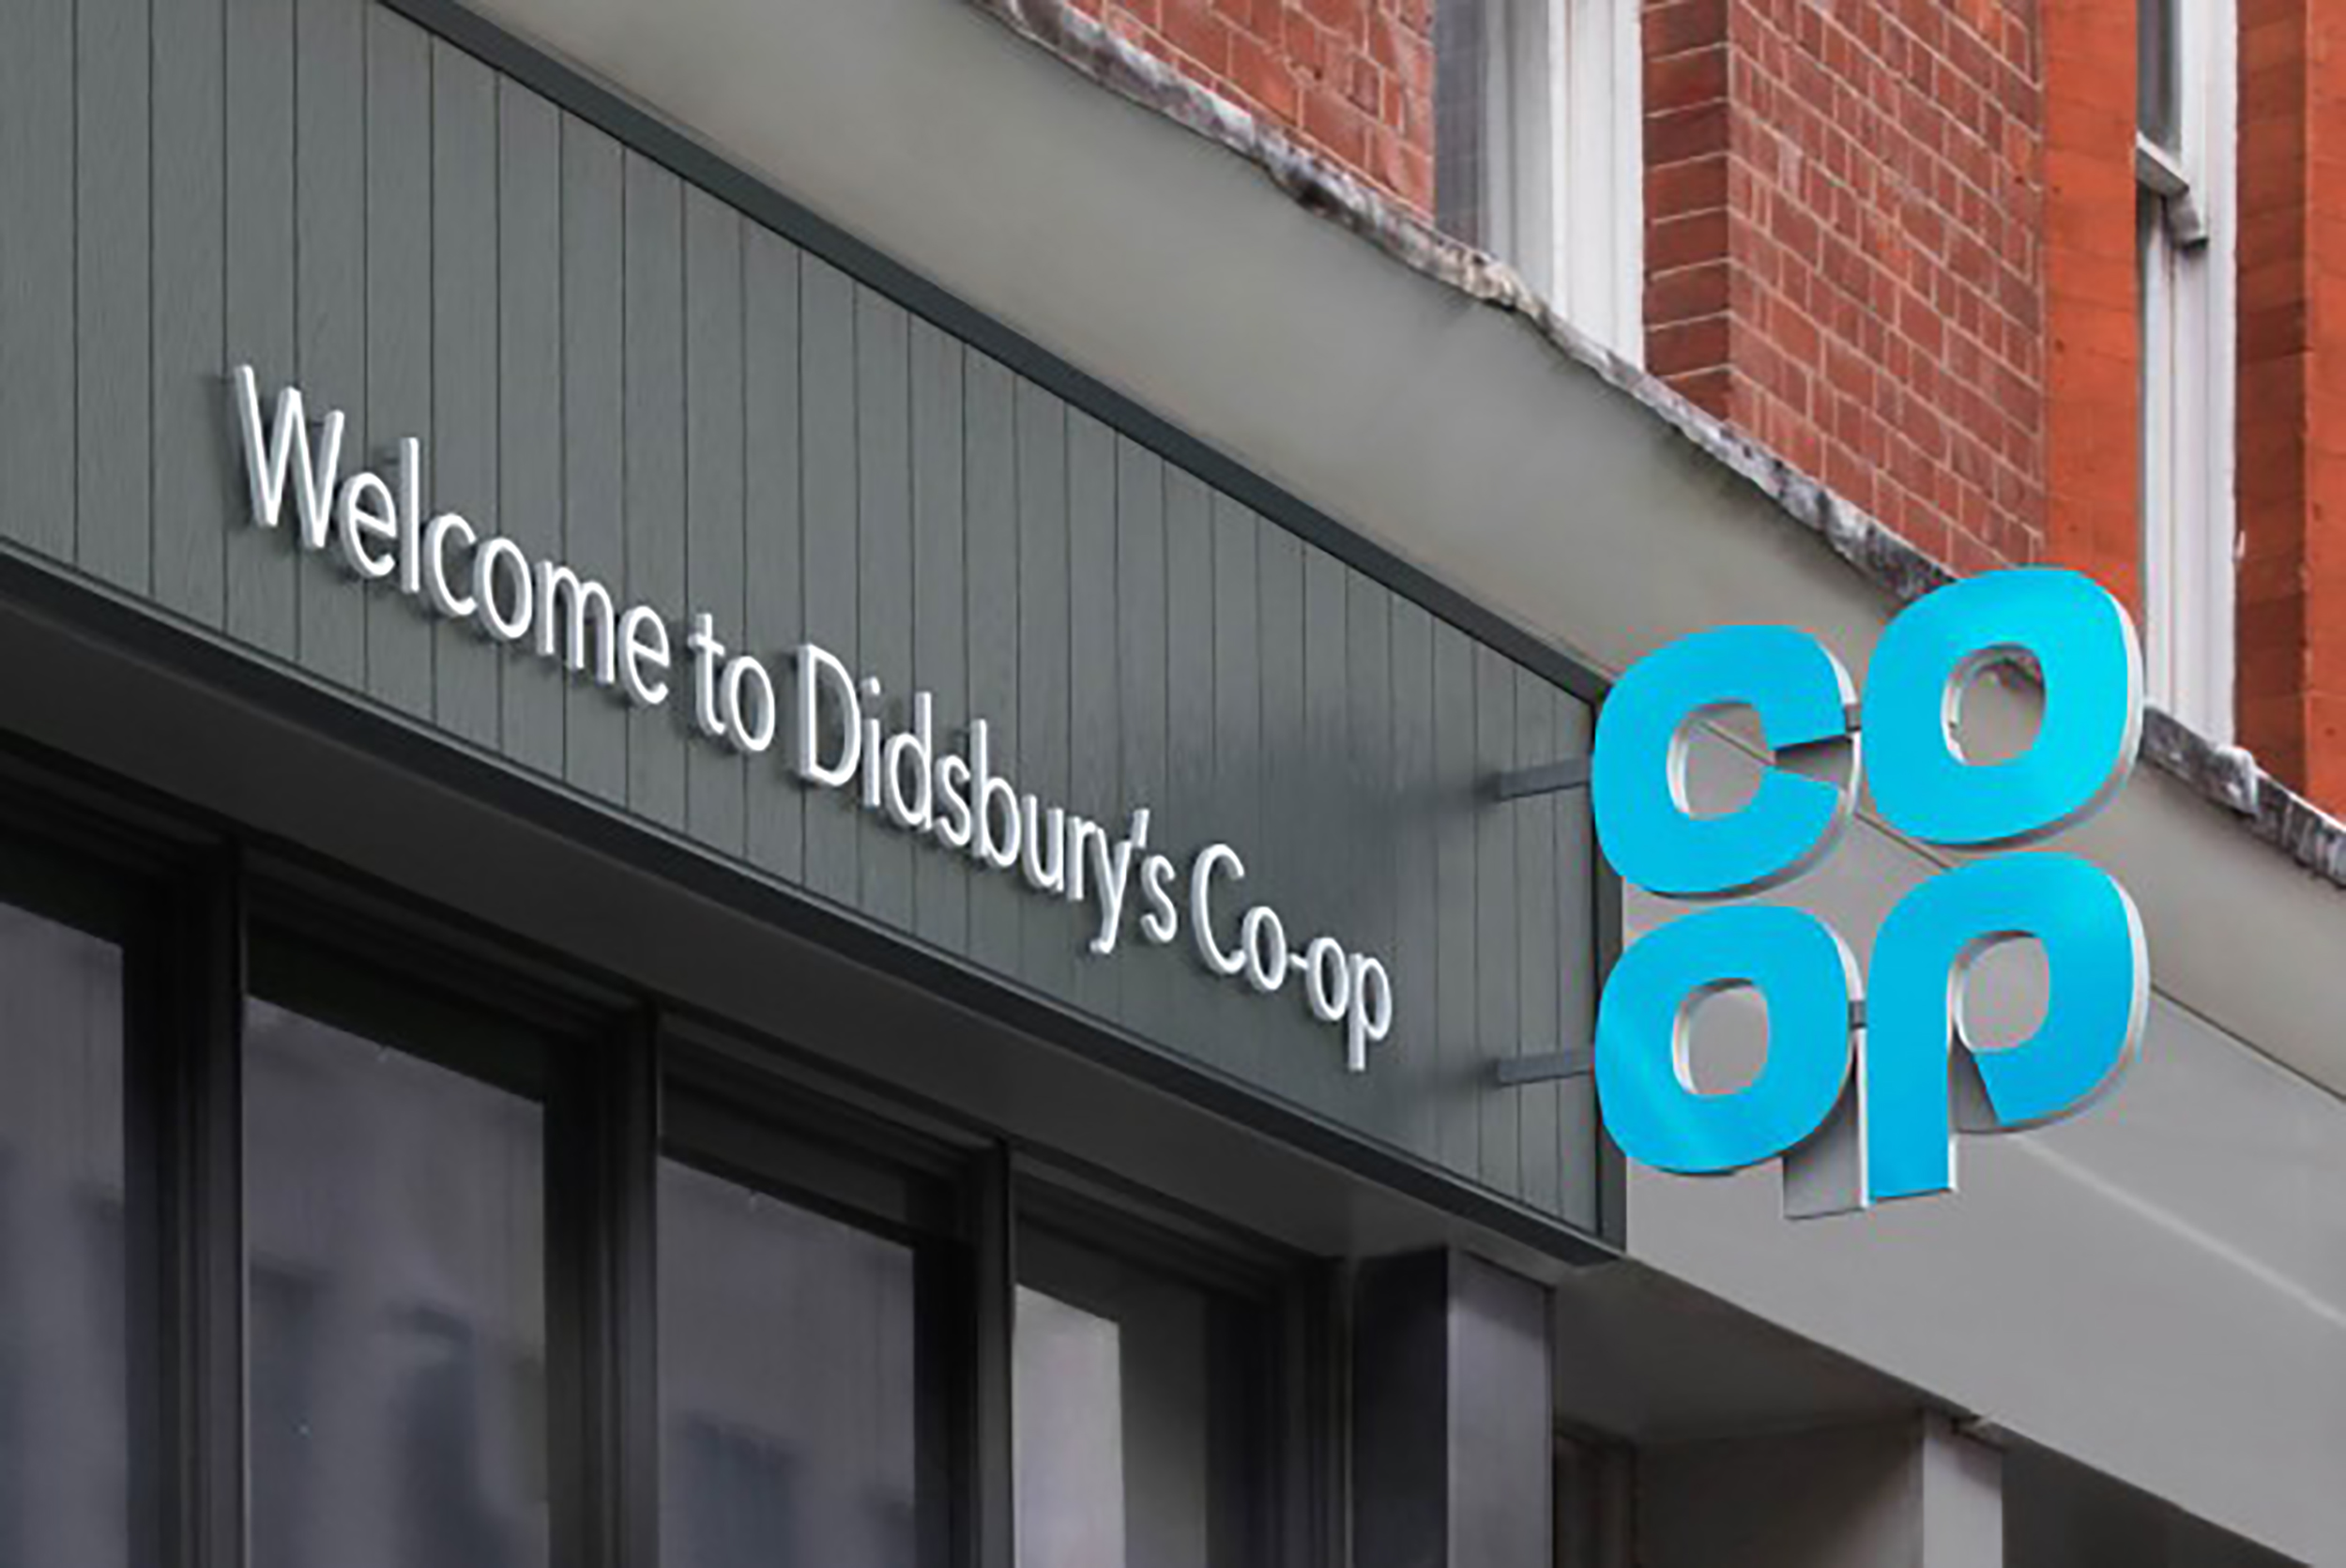 The Co-op's new logo reverts to its most well known visual identity